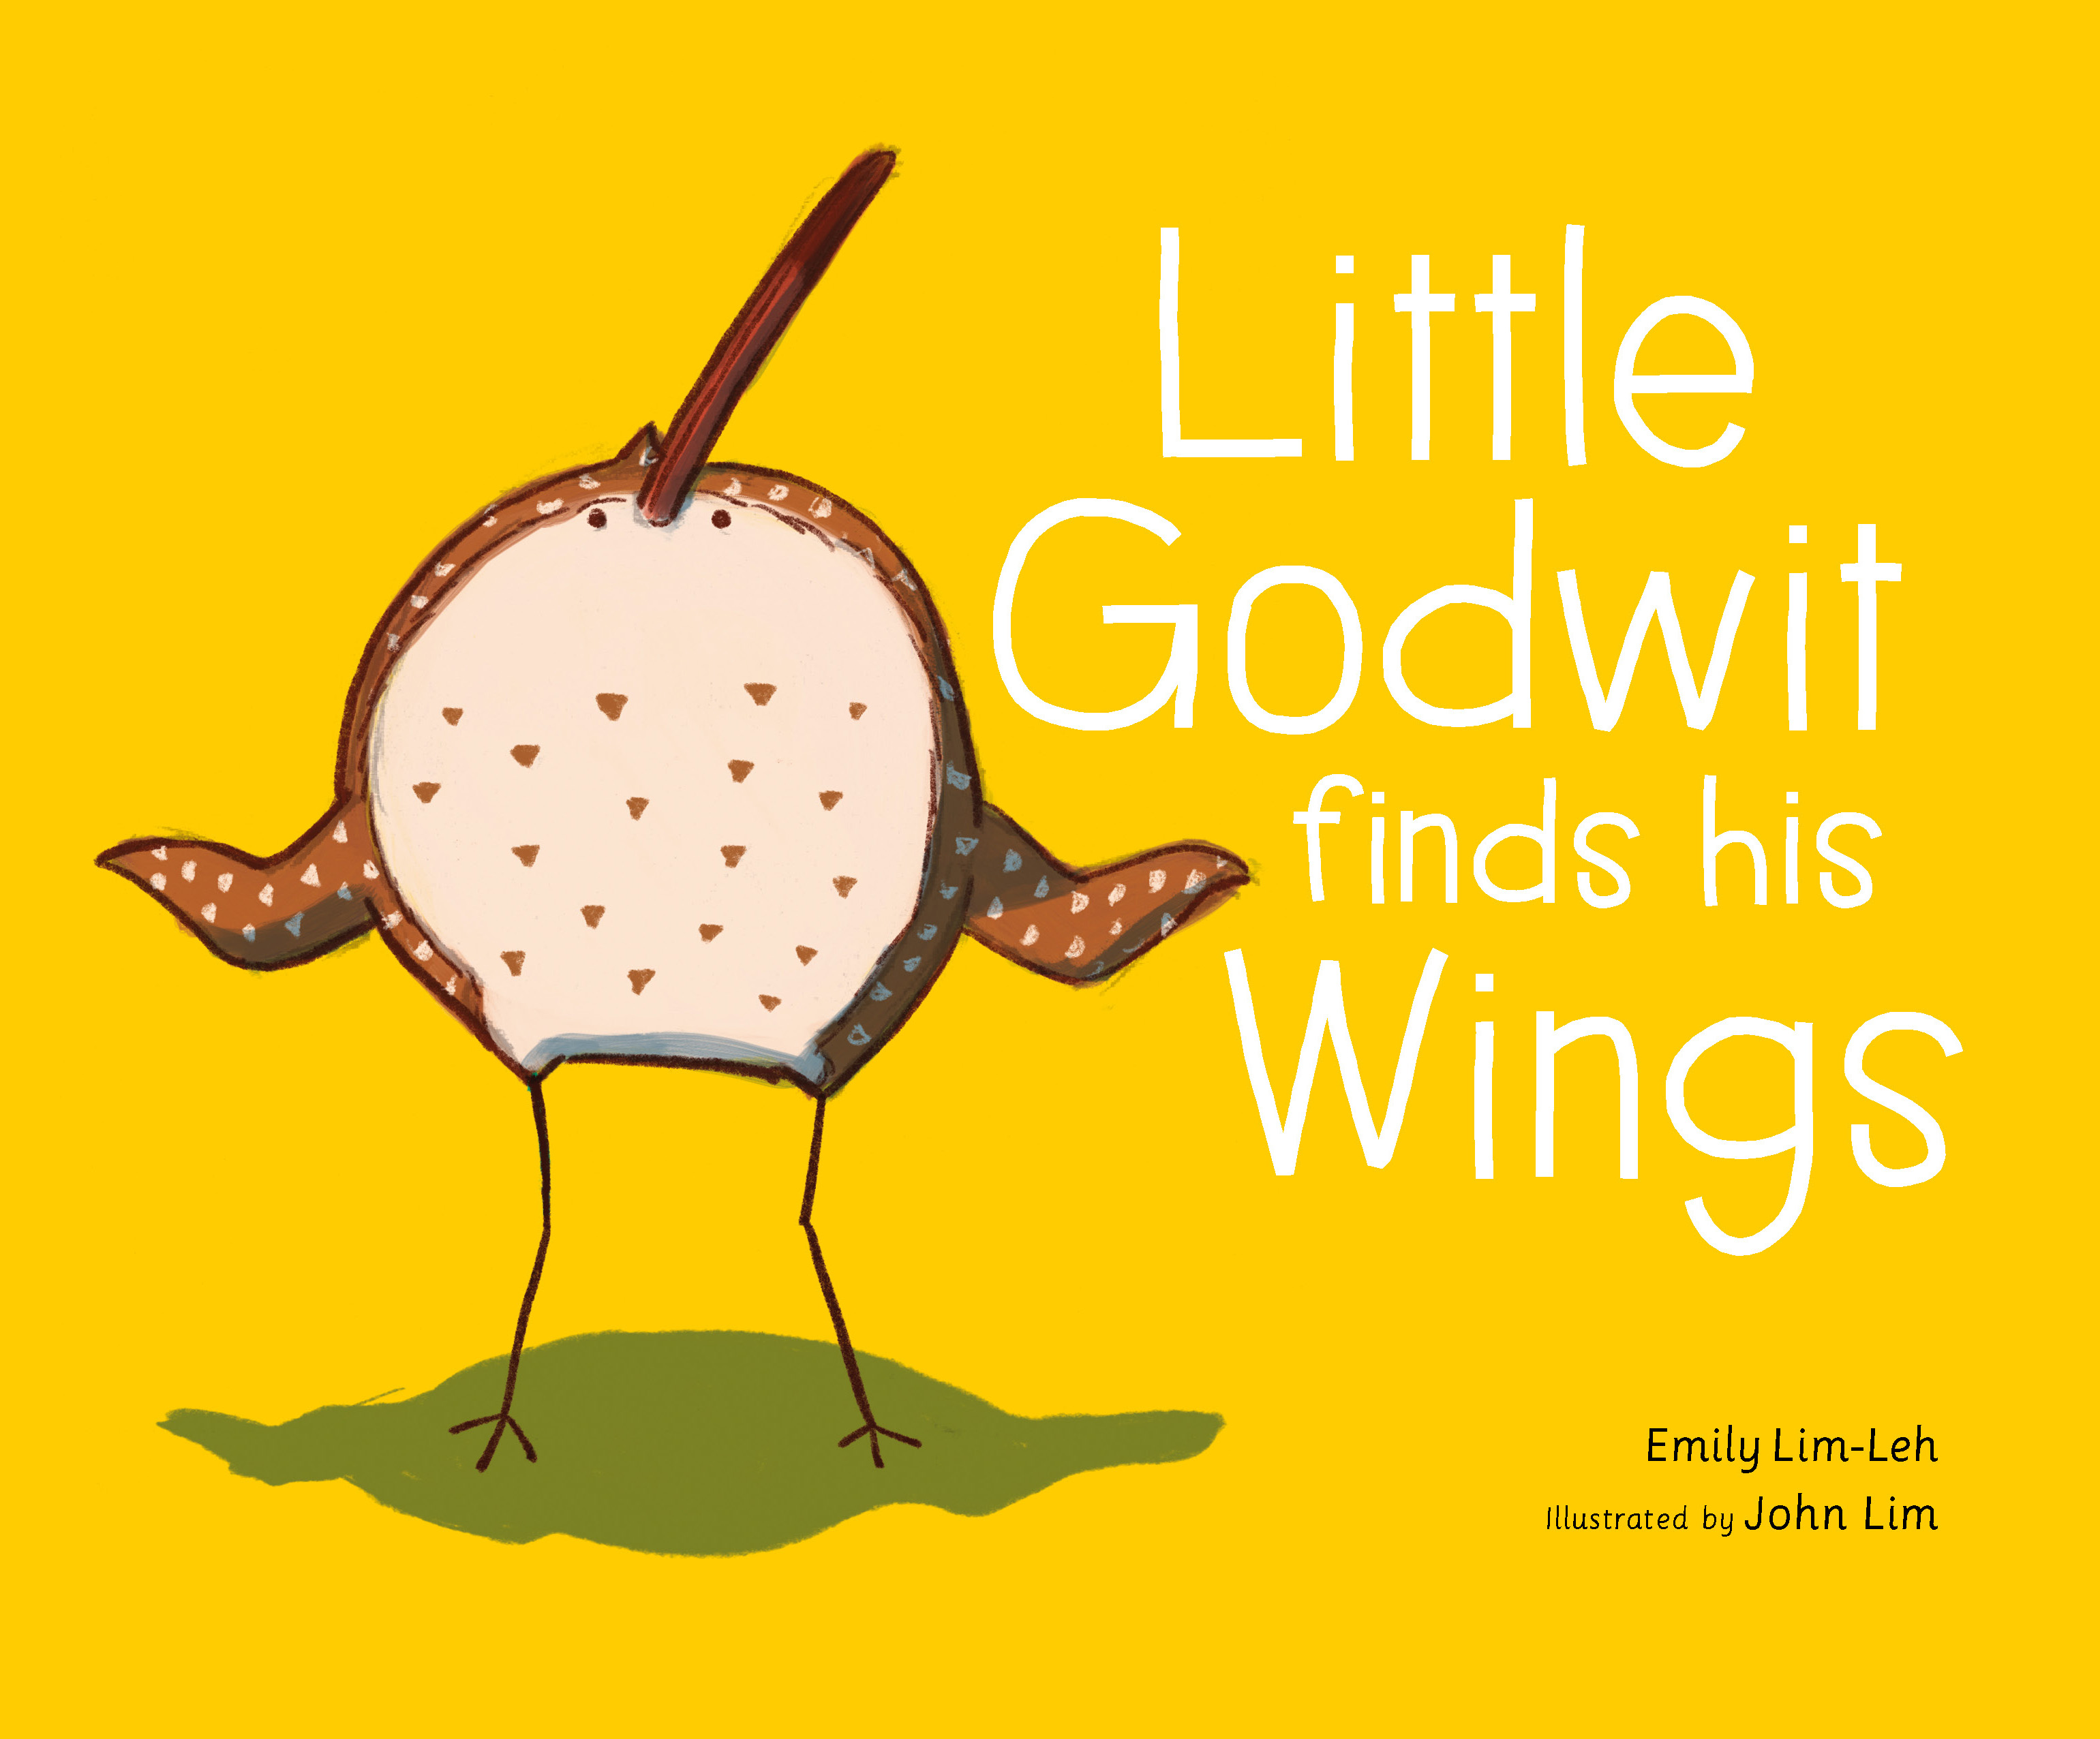 Little Godwit Finds His Wings By Emily Lim-Leh 03-01-18